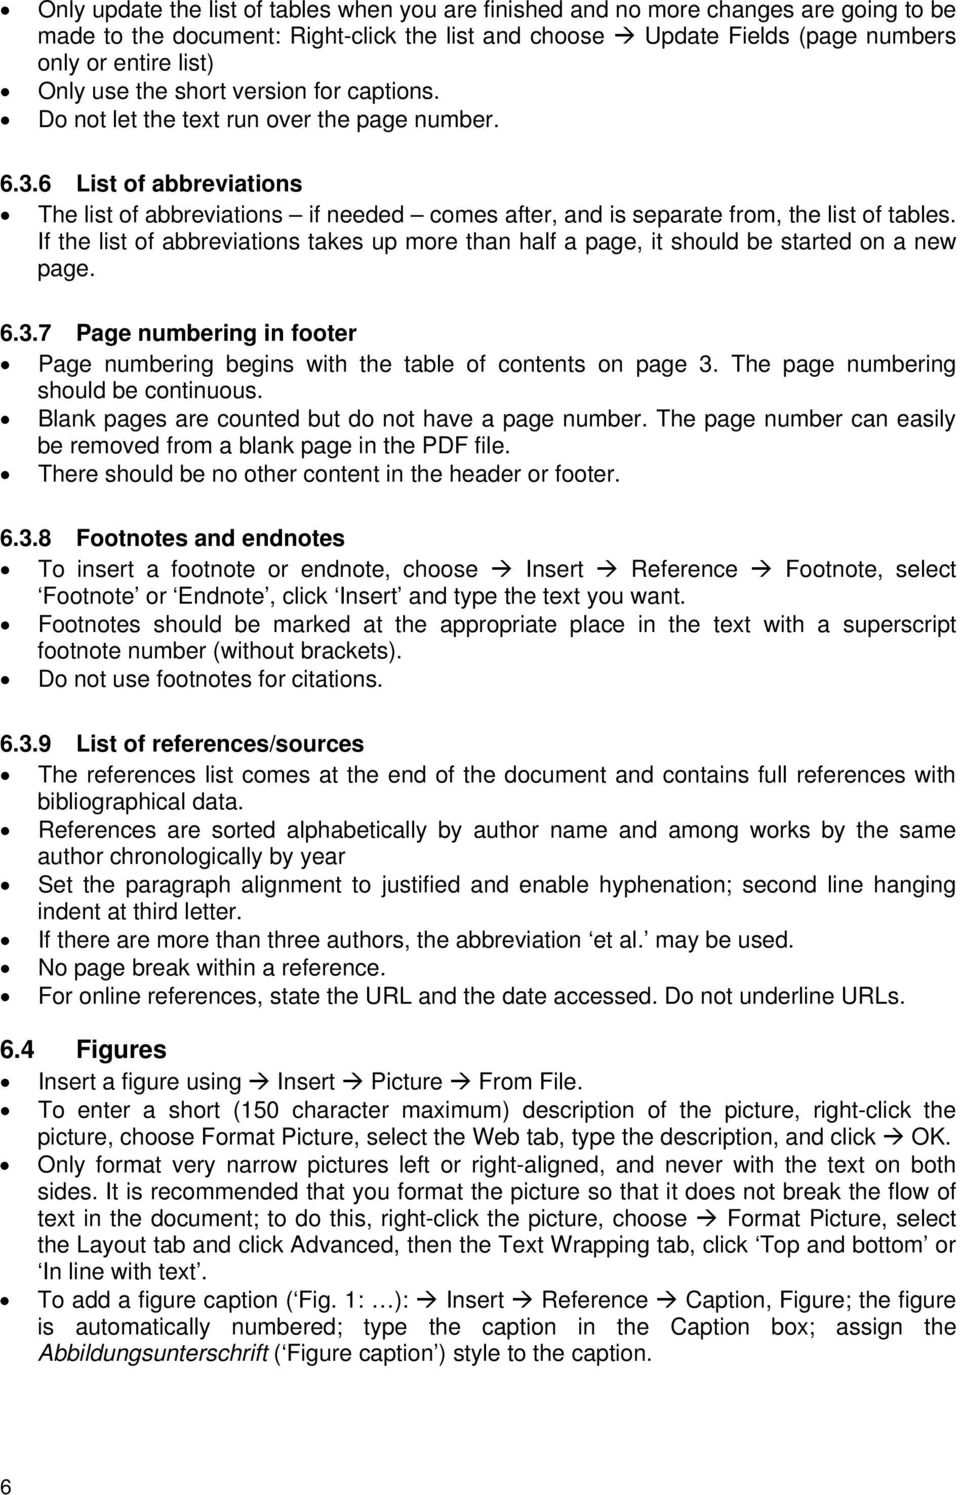 If the list of abbreviations takes up more than half a page, it should be started on a new page. 6.3.7 Page numbering in footer Page numbering begins with the table of contents on page 3.